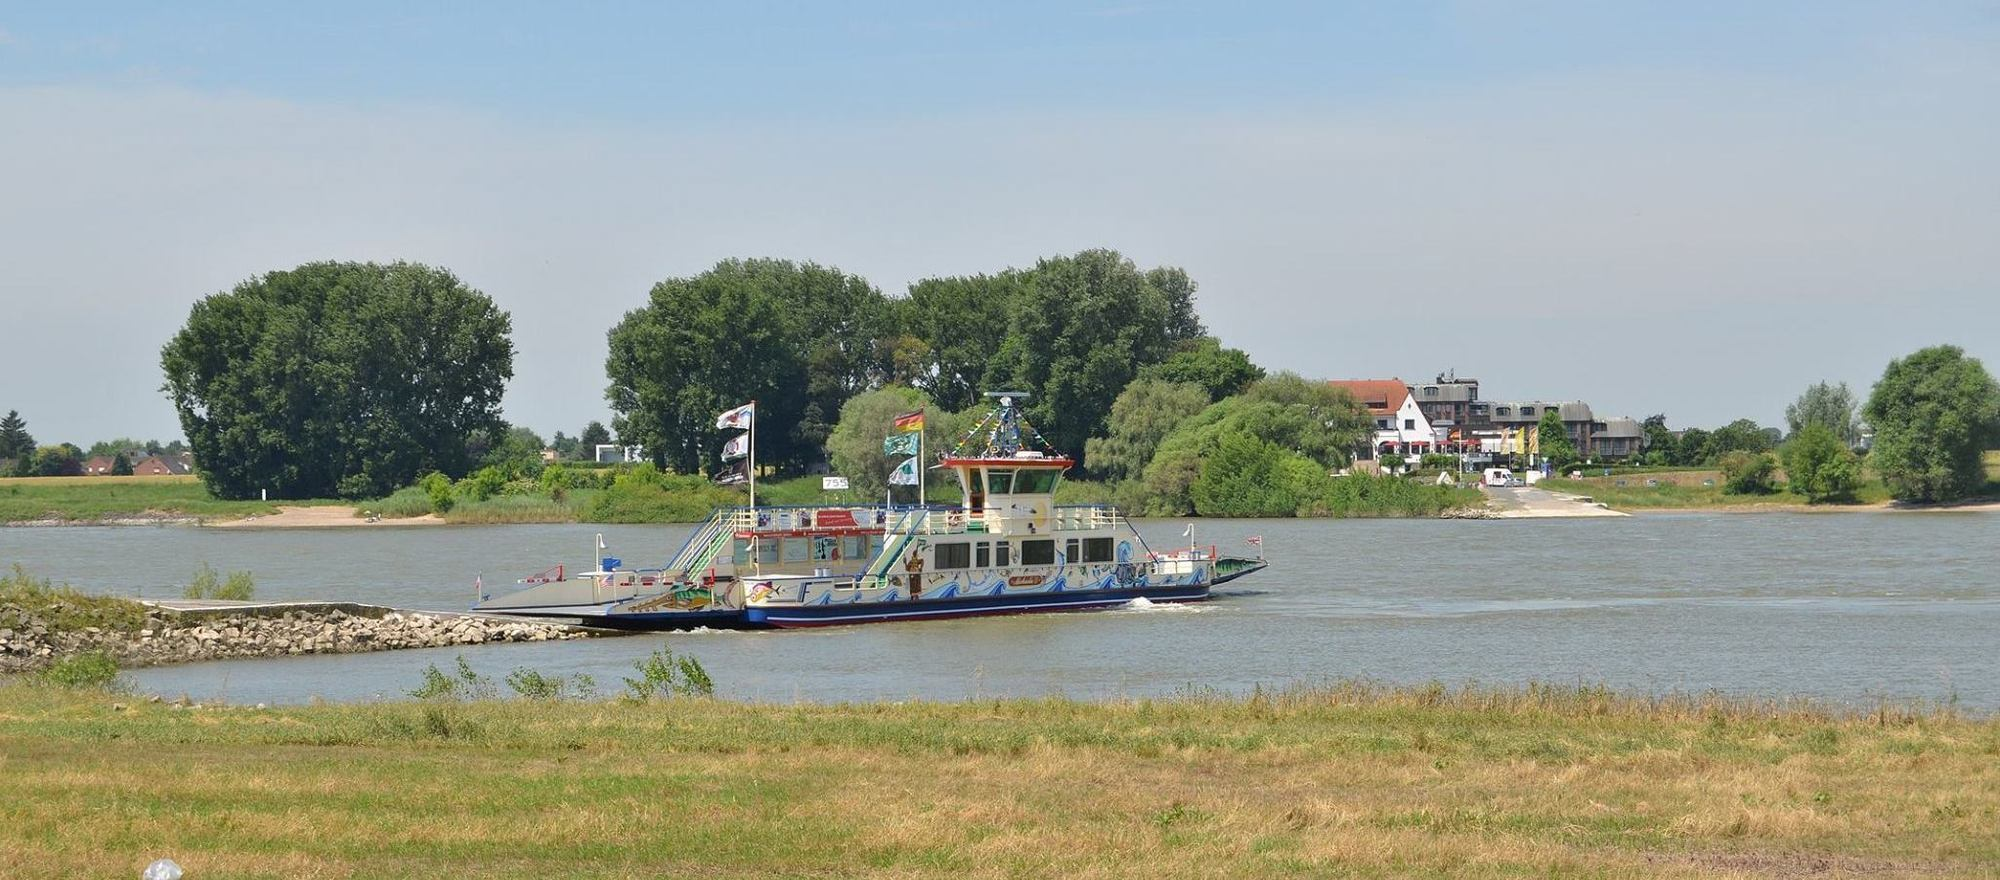 Ferry over the Rhine near the 4-star hotel Ringhotel Rheinhotel Vier Jahreszeiten in Meerbusch